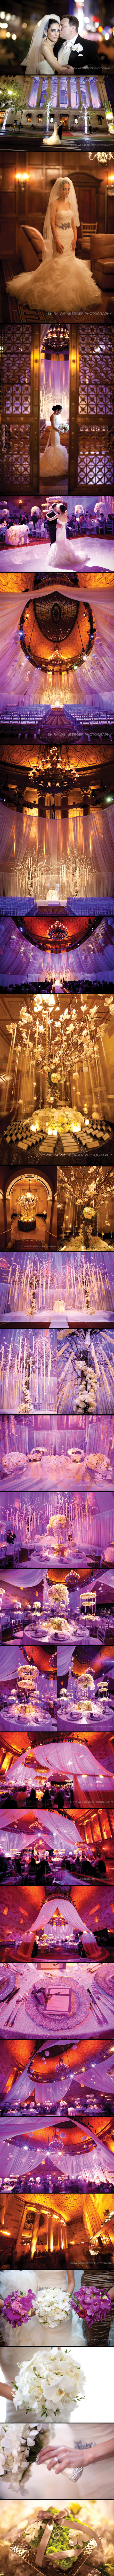 Tantawan Bloom Inc. Floral Design and Wedding Decor in New York City